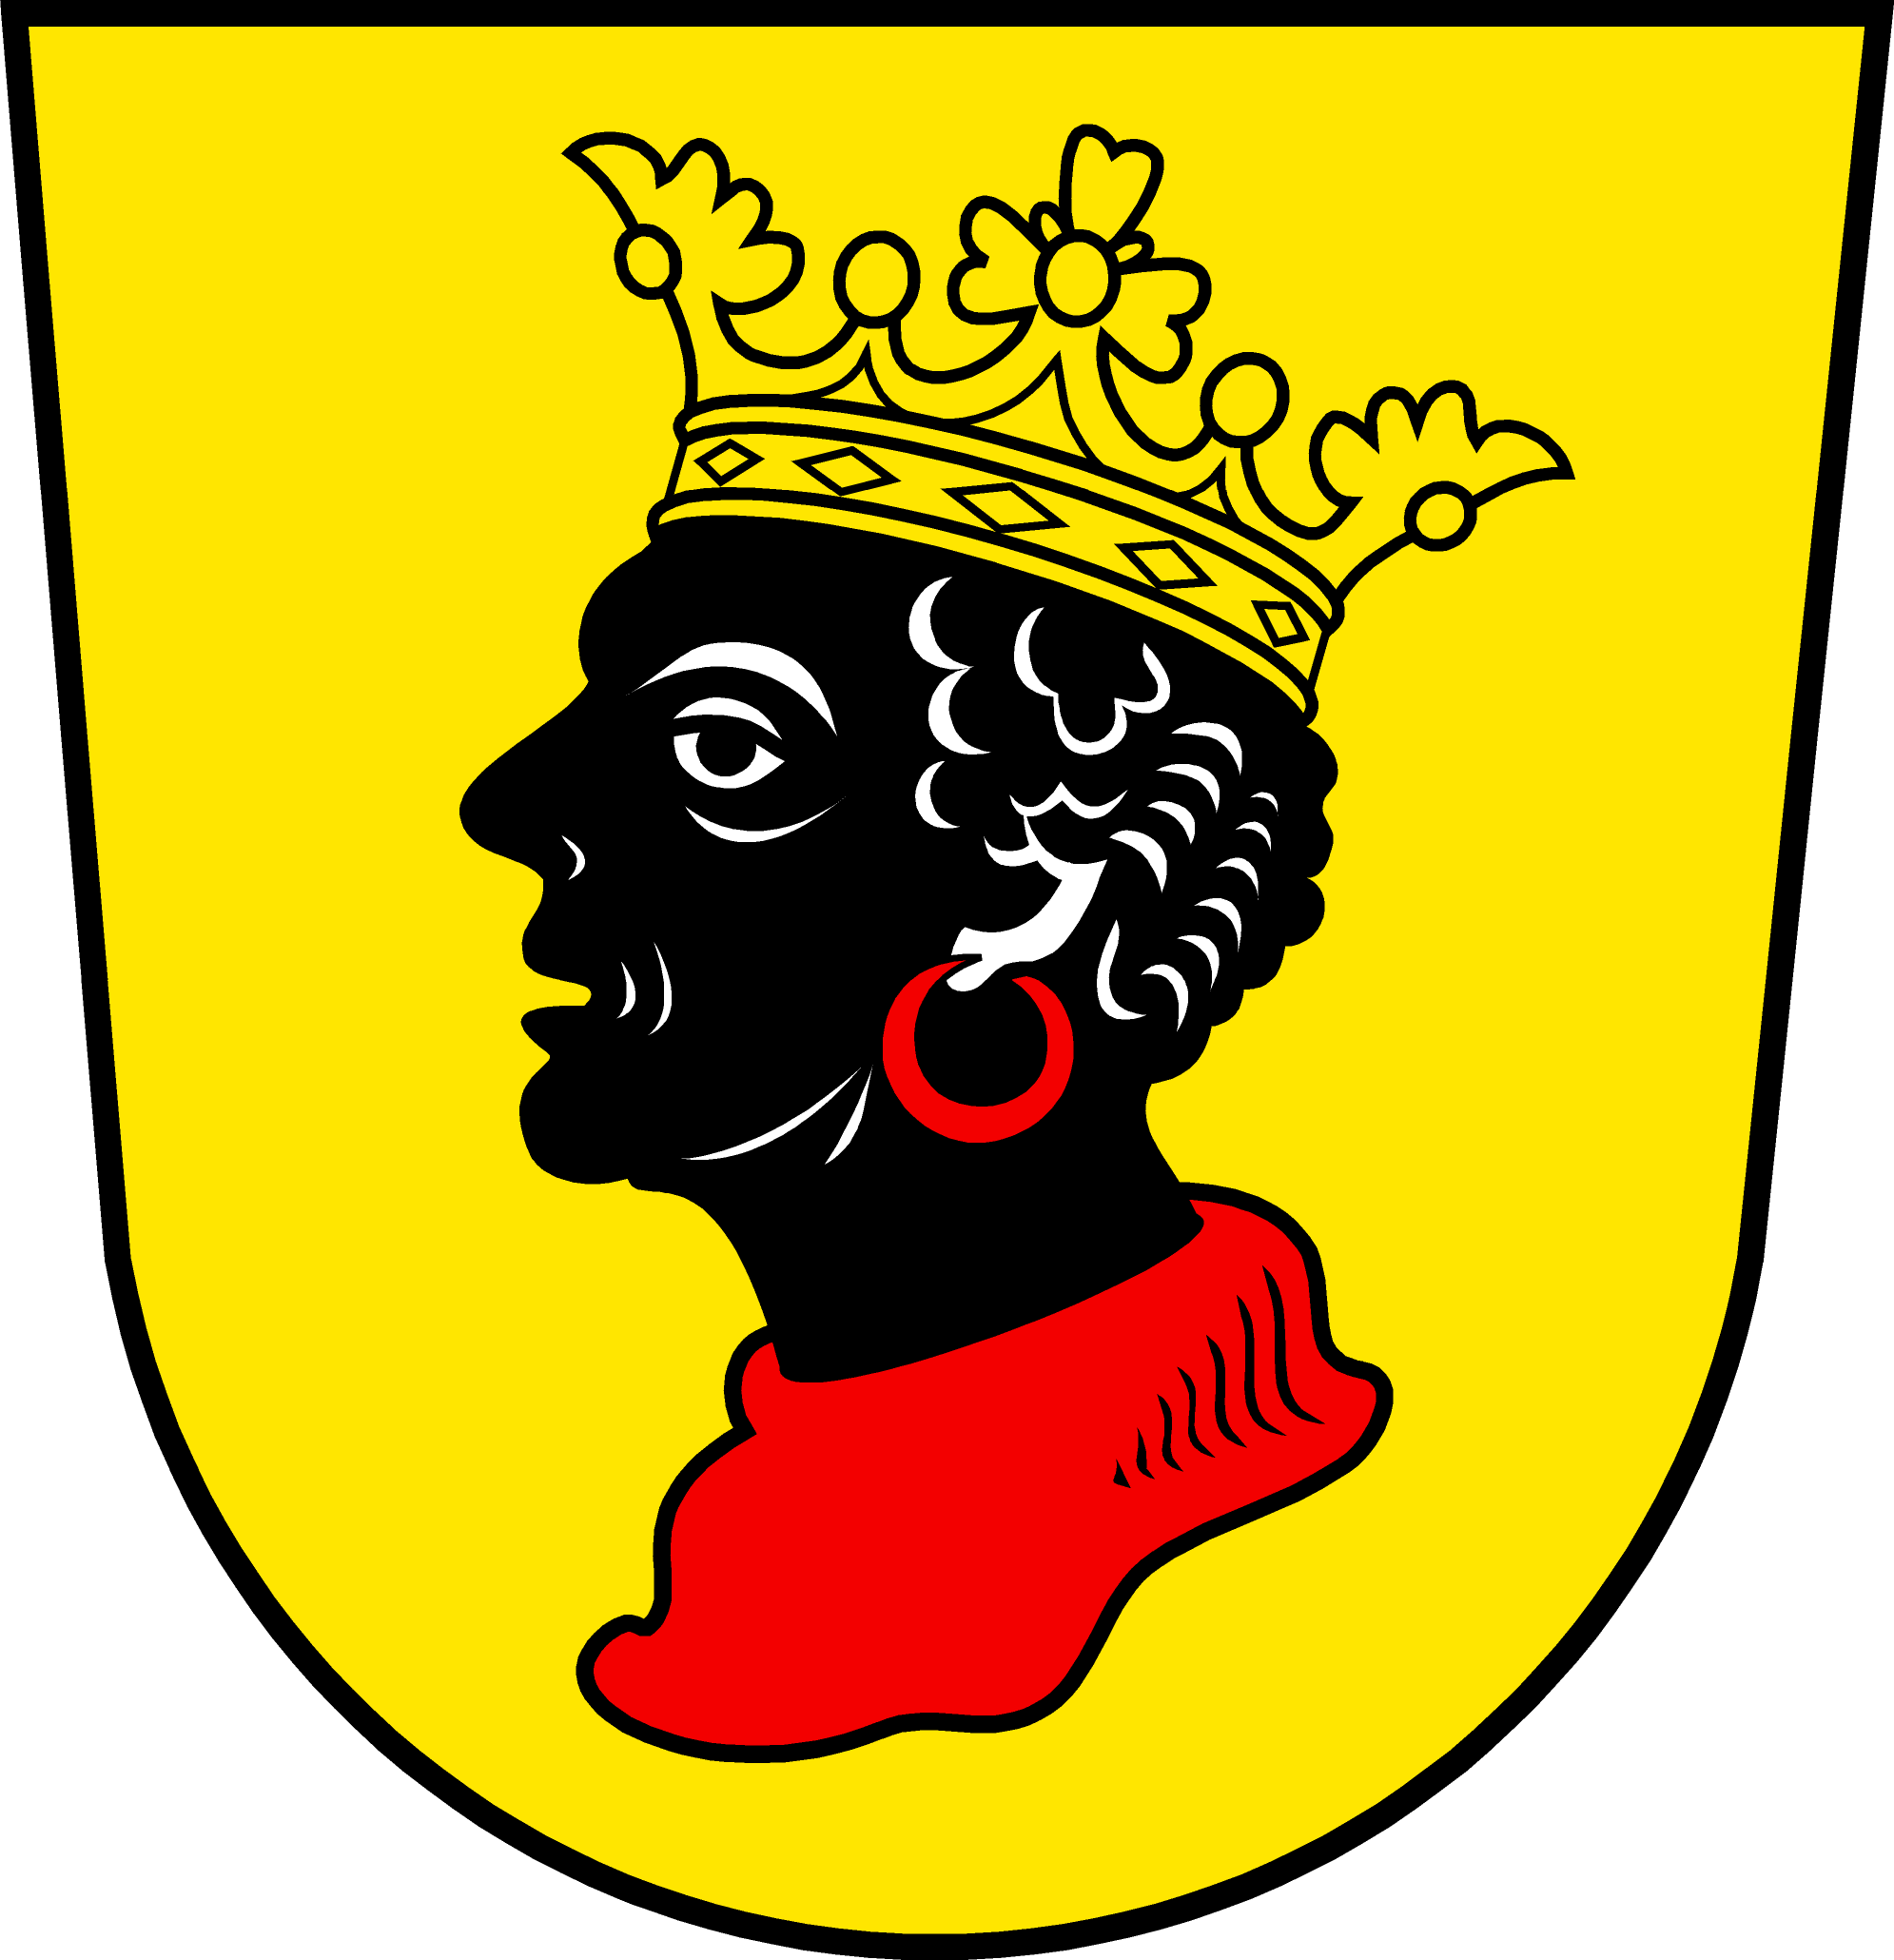 File:Hochstift Freising coat of arms.png.